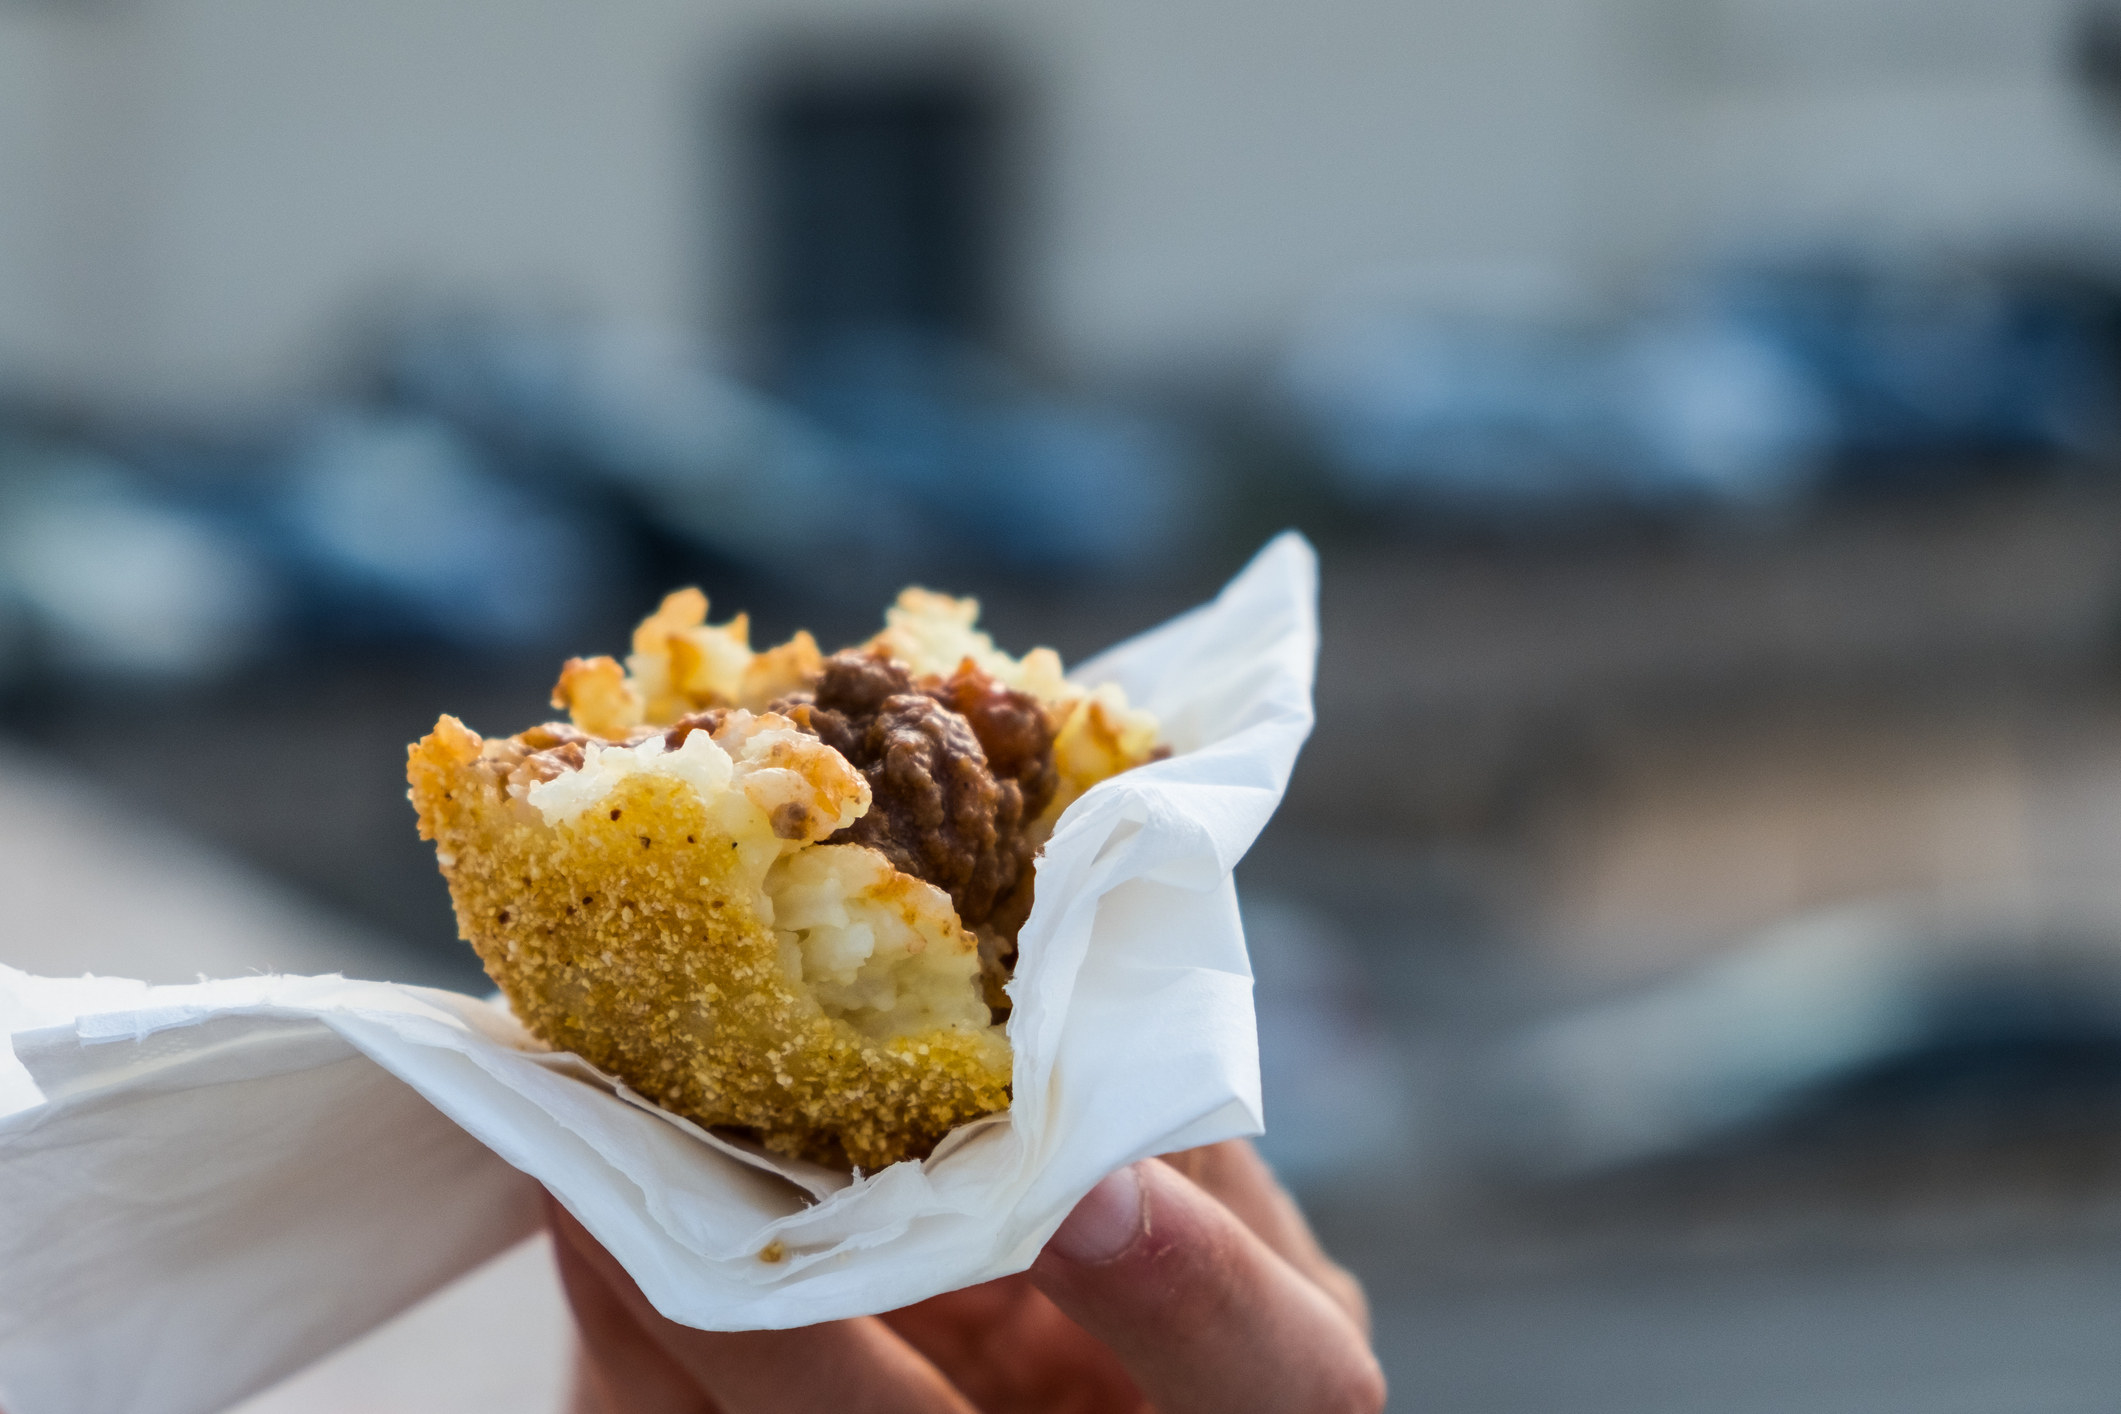 crispy, golden fried ball of rice with a meat filling